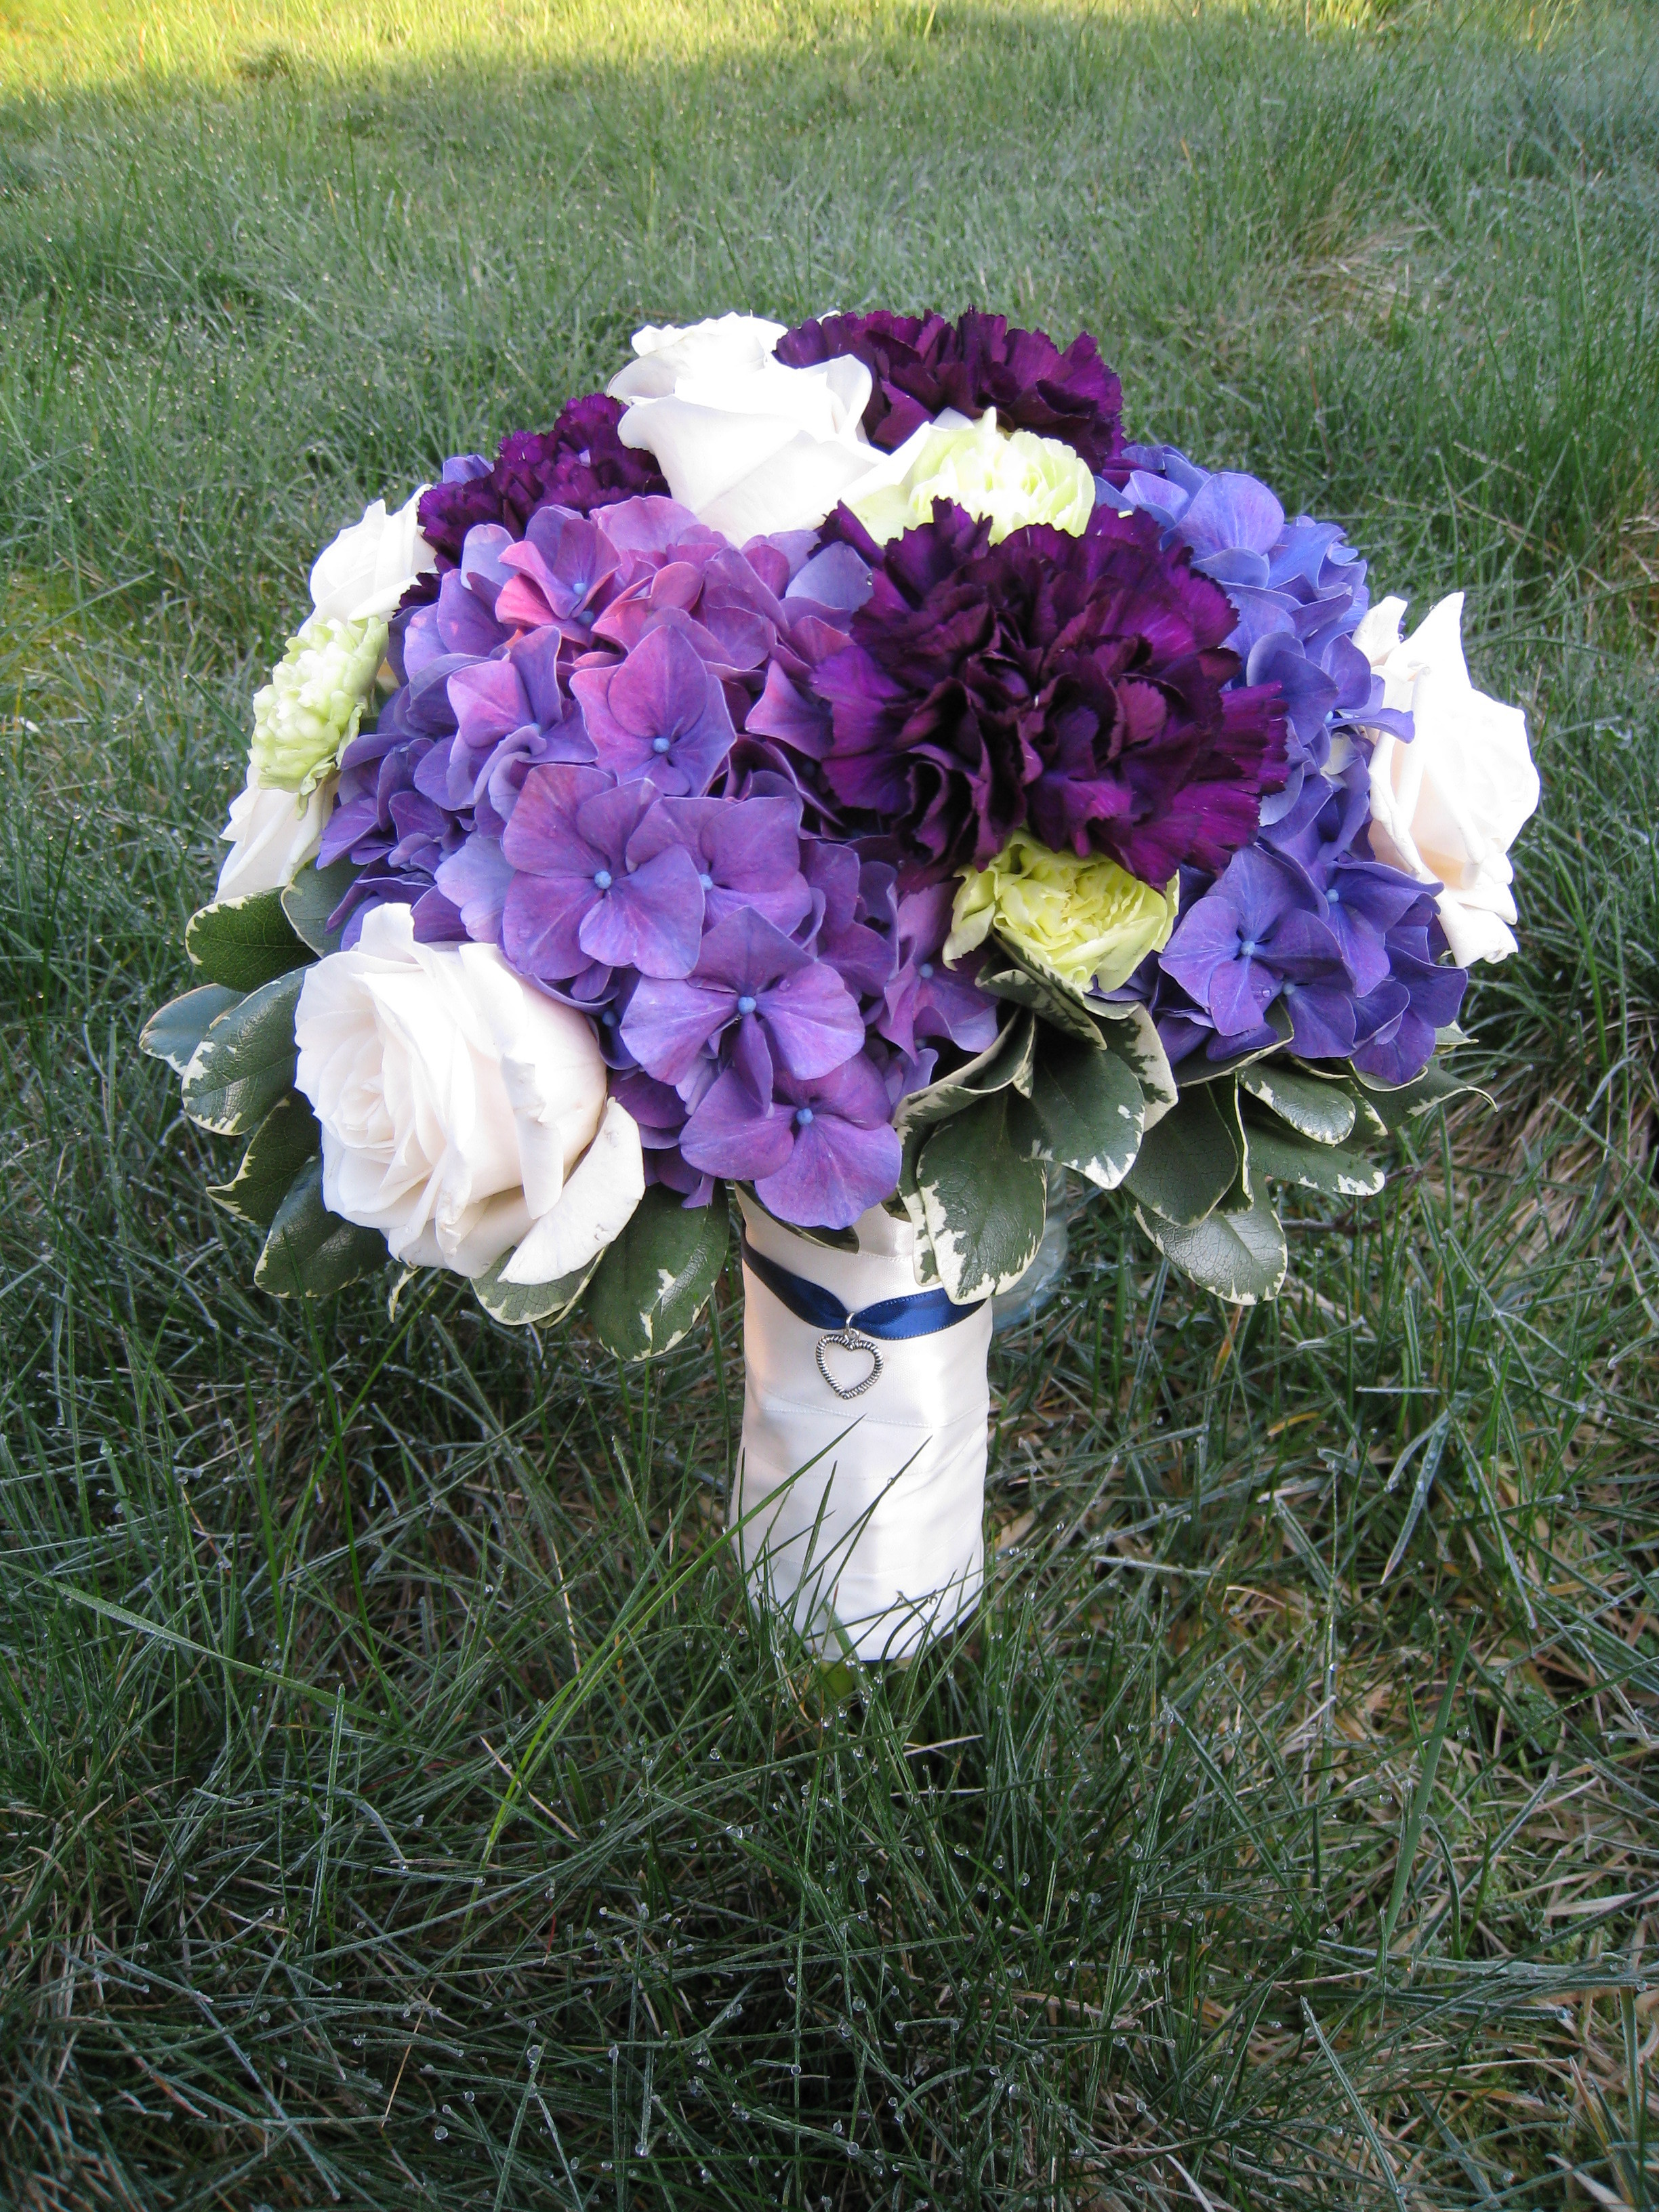 Flowers & Decor, purple, Bride Bouquets, Flowers, Bouquet, Bridal, Hydrangea, Carnations, Designs by courtney